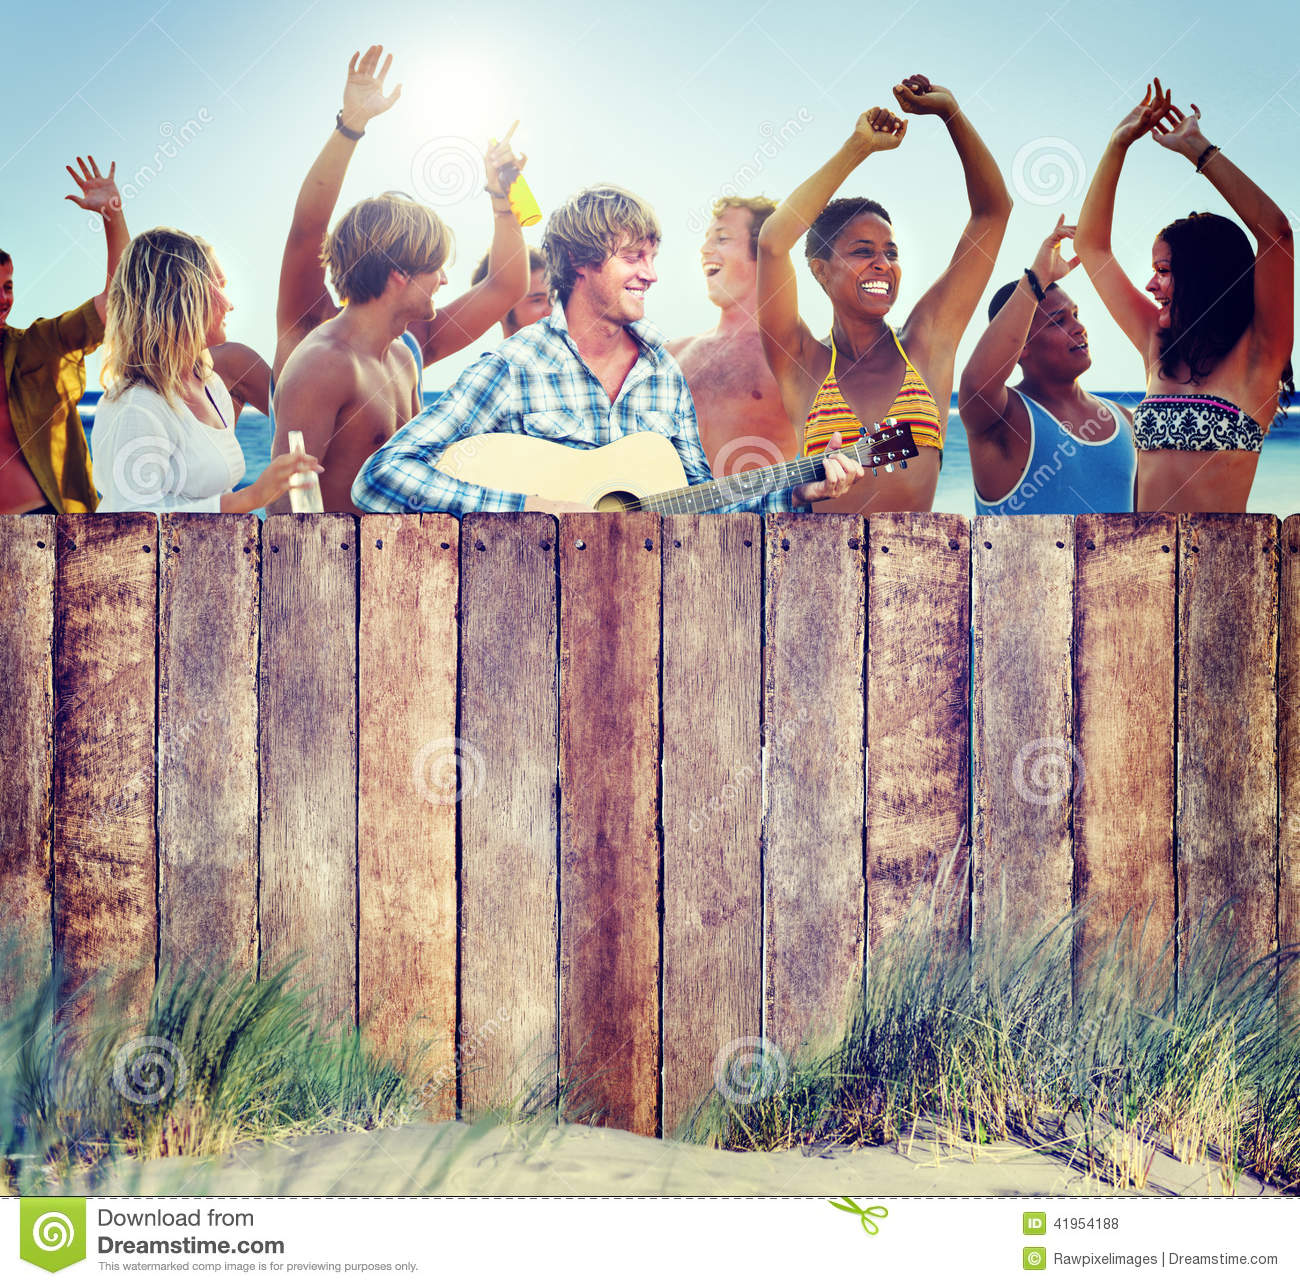 Multi-Ethnic Group of People Partying Outdoors